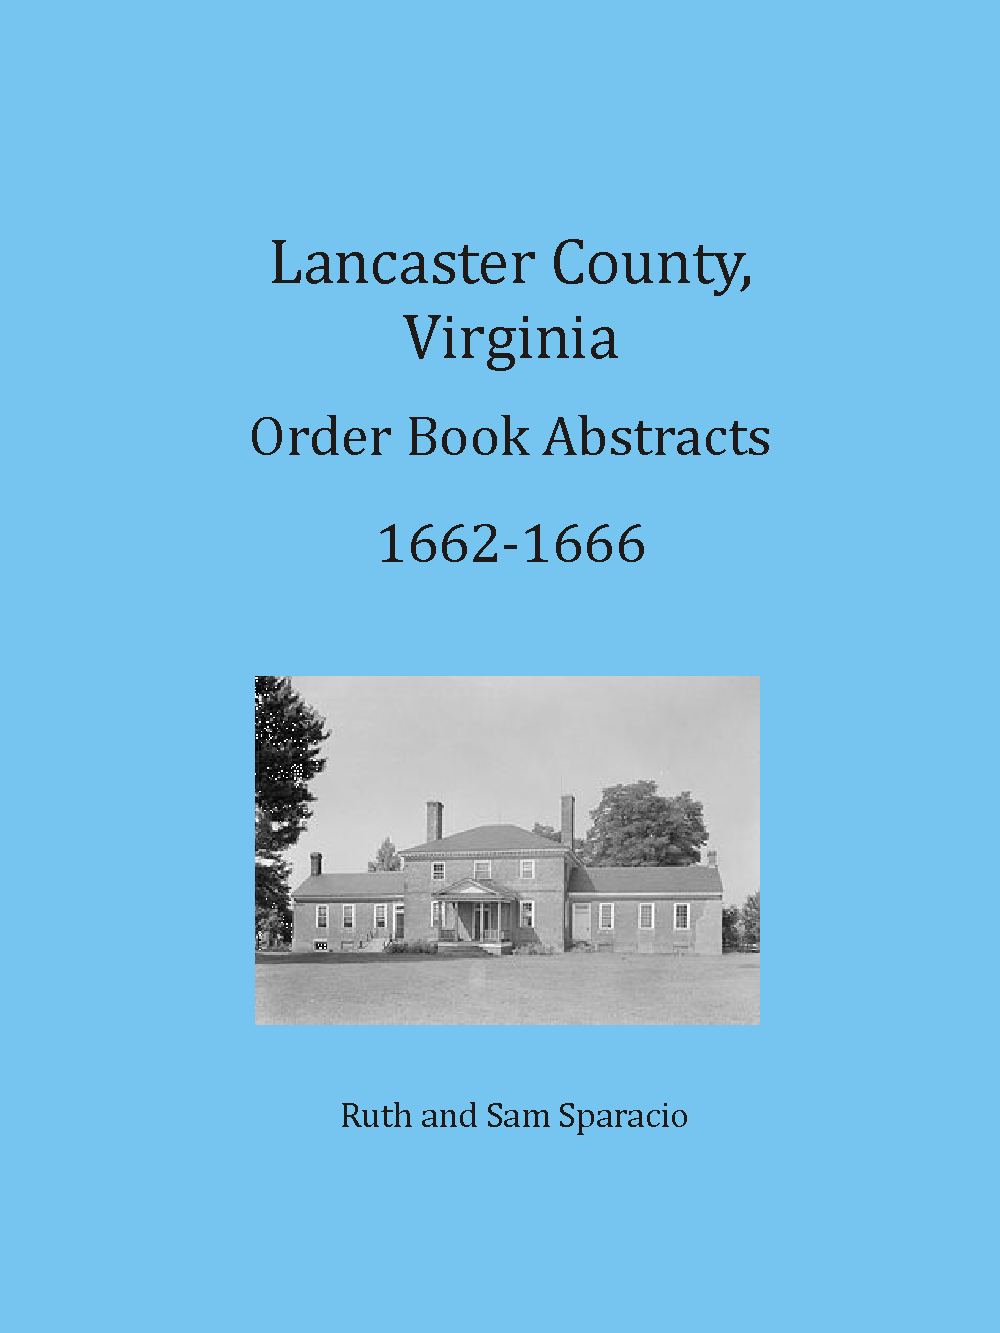 Lancaster County, Virginia Order Book Abstracts, 1662-1666